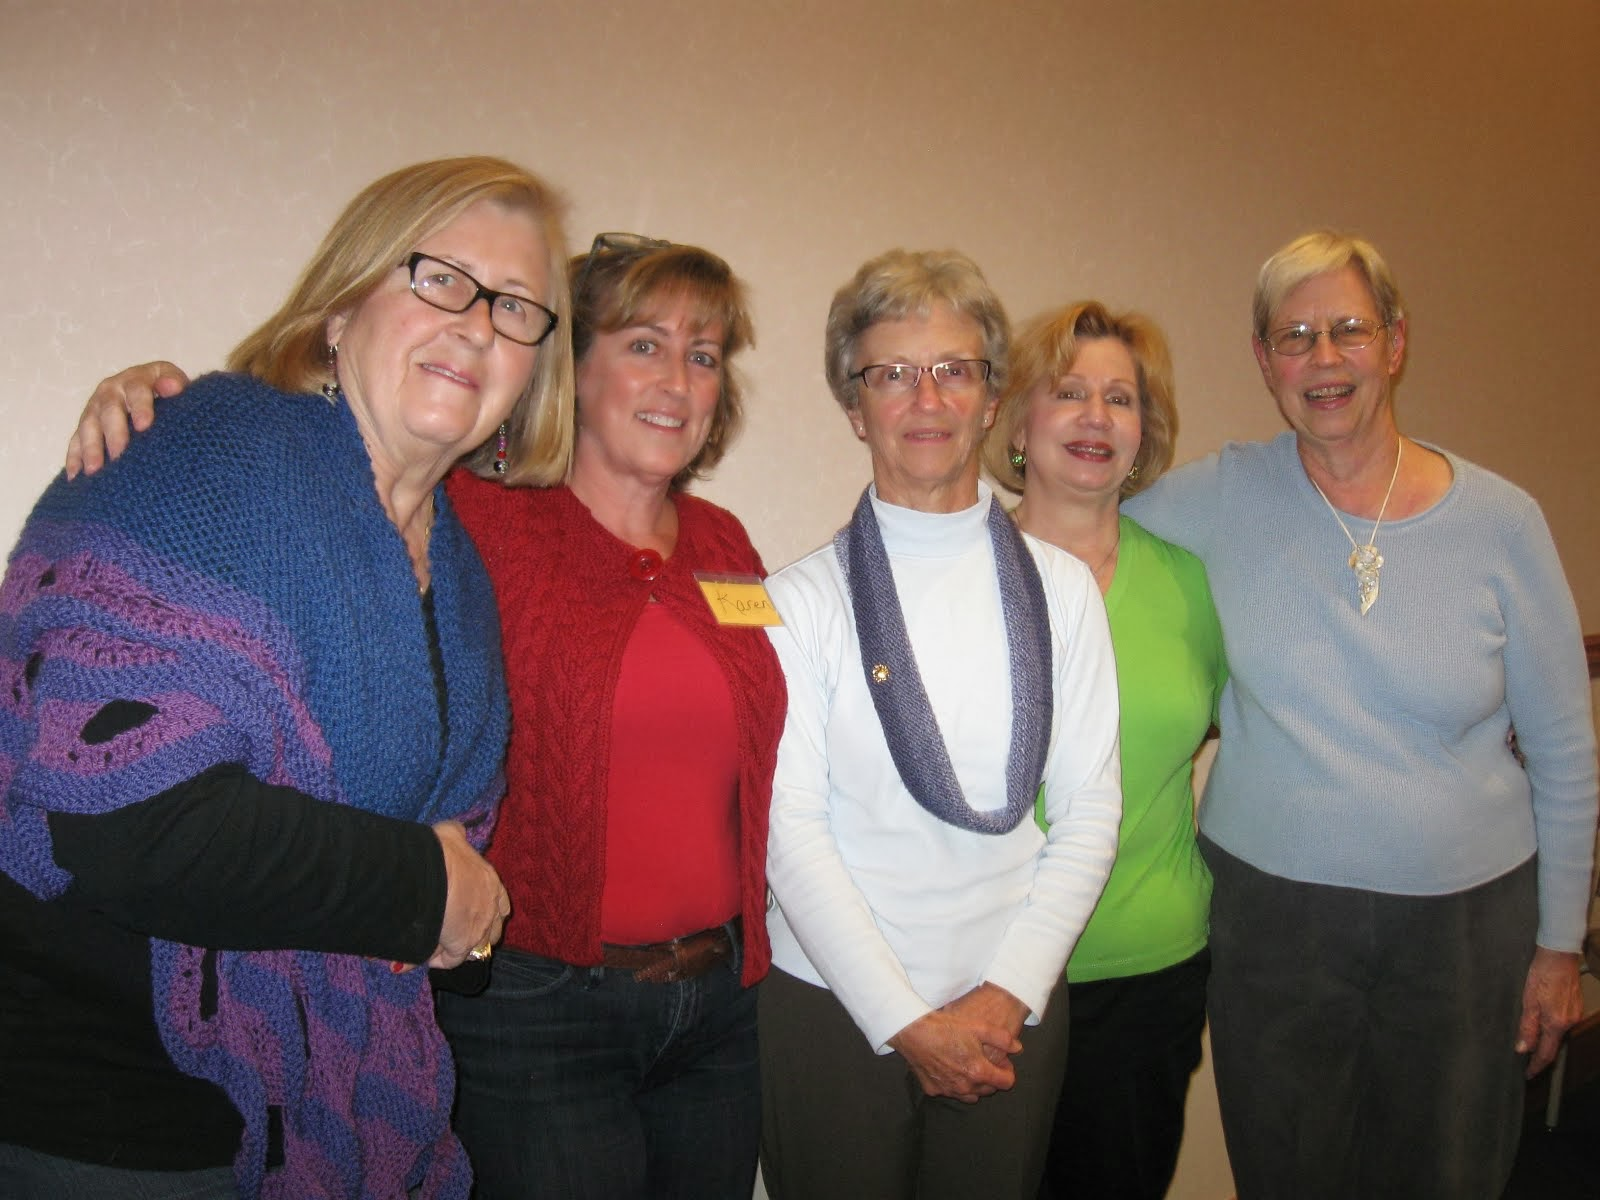 Lee,Karen,Terry,Sylvia,Marcia